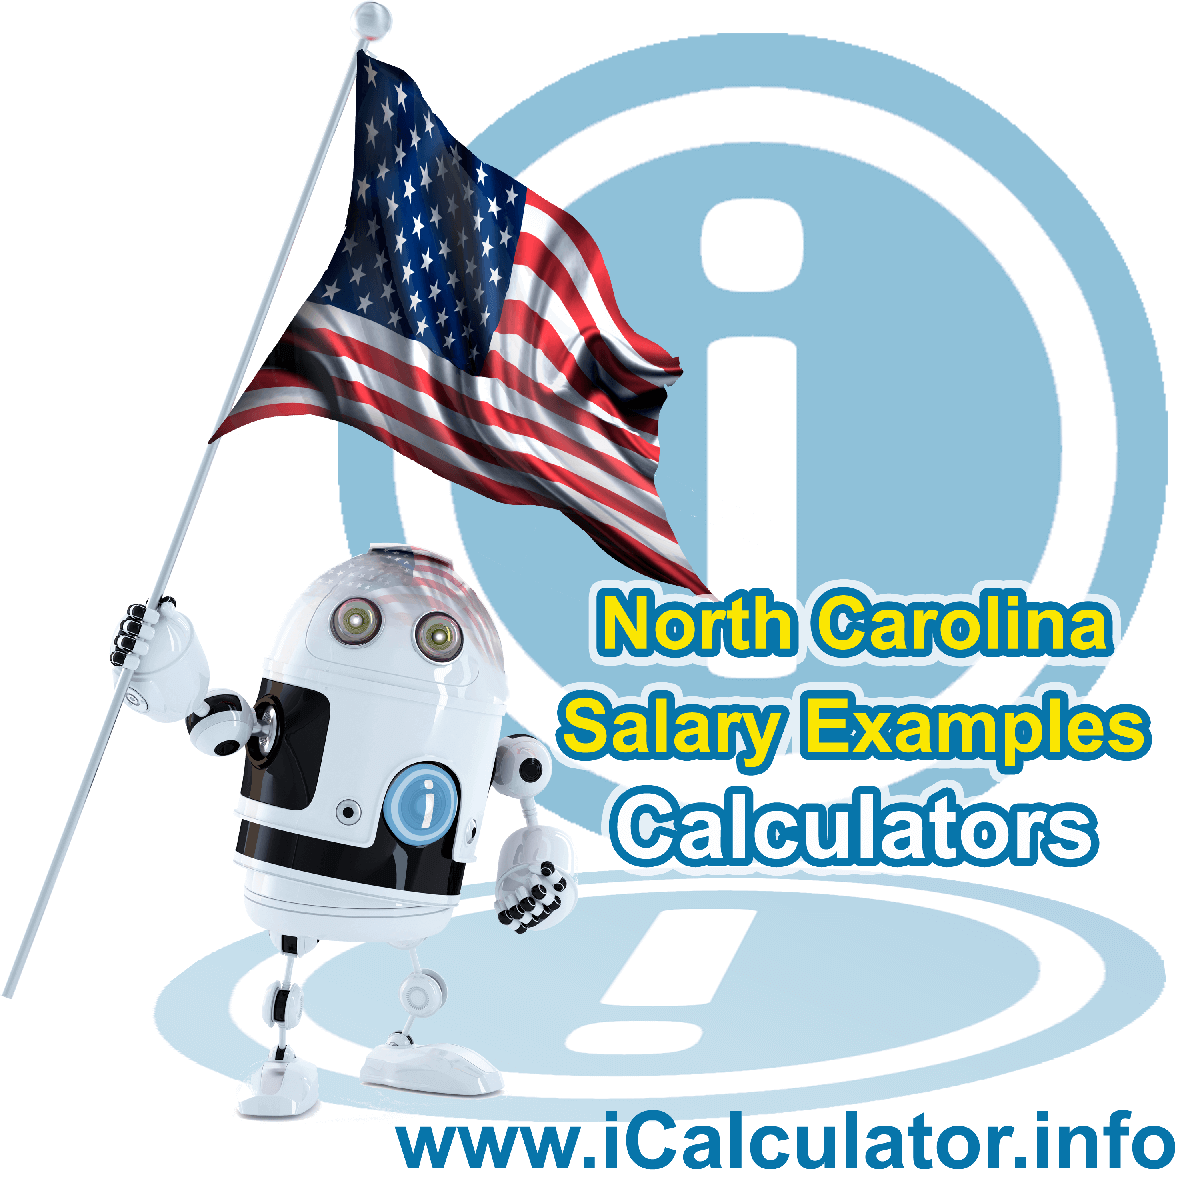 North Carolina Salary Example for $175,000.00 in 2020 | iCalculator | $175,000.00 salary example for employee and employer paying North Carolina State tincome taxes. Detailed salary after tax calculation including North Carolina State Tax, Federal State Tax, Medicare Deductions, Social Security, Capital Gains and other income tax and salary deductions complete with supporting North Carolina state tax tables